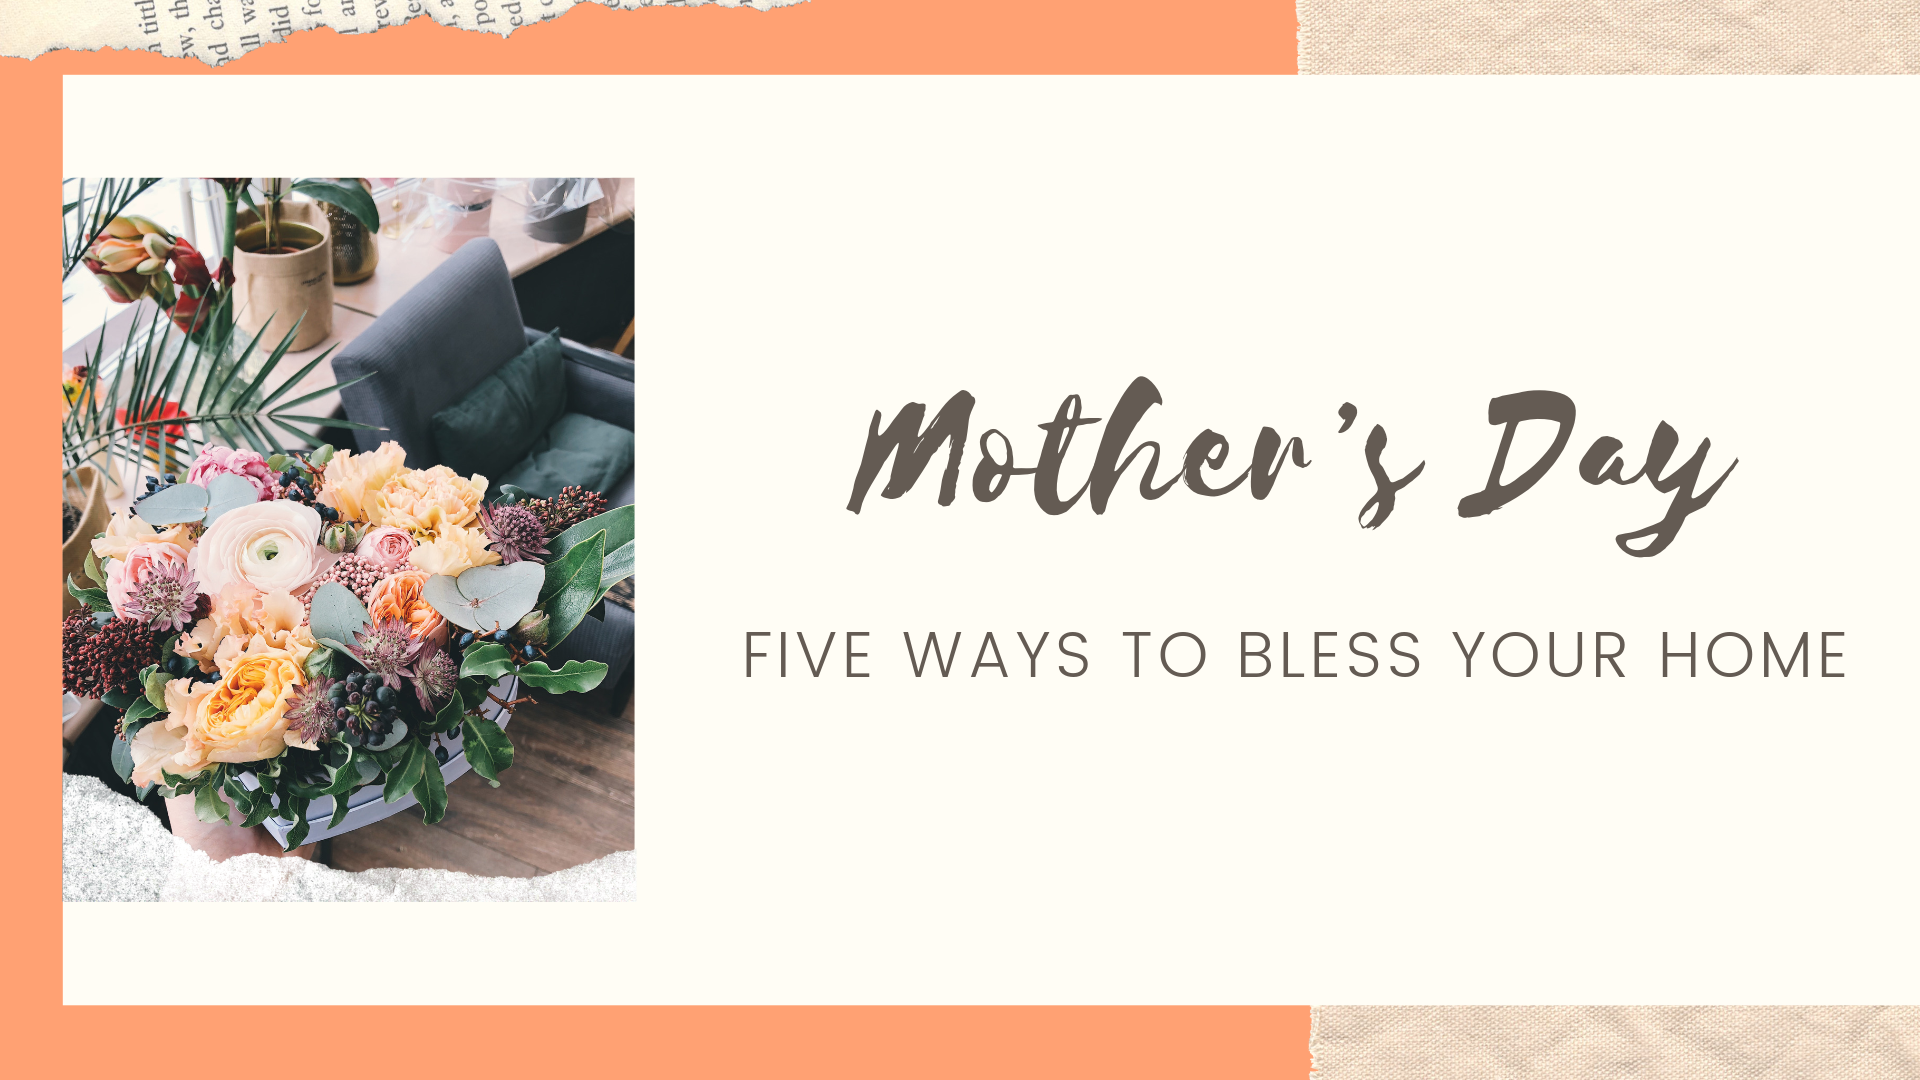 ICA Kyiv Sunday, May 12, 2019. Mother's Day: 5 Ways To Bless Your Home